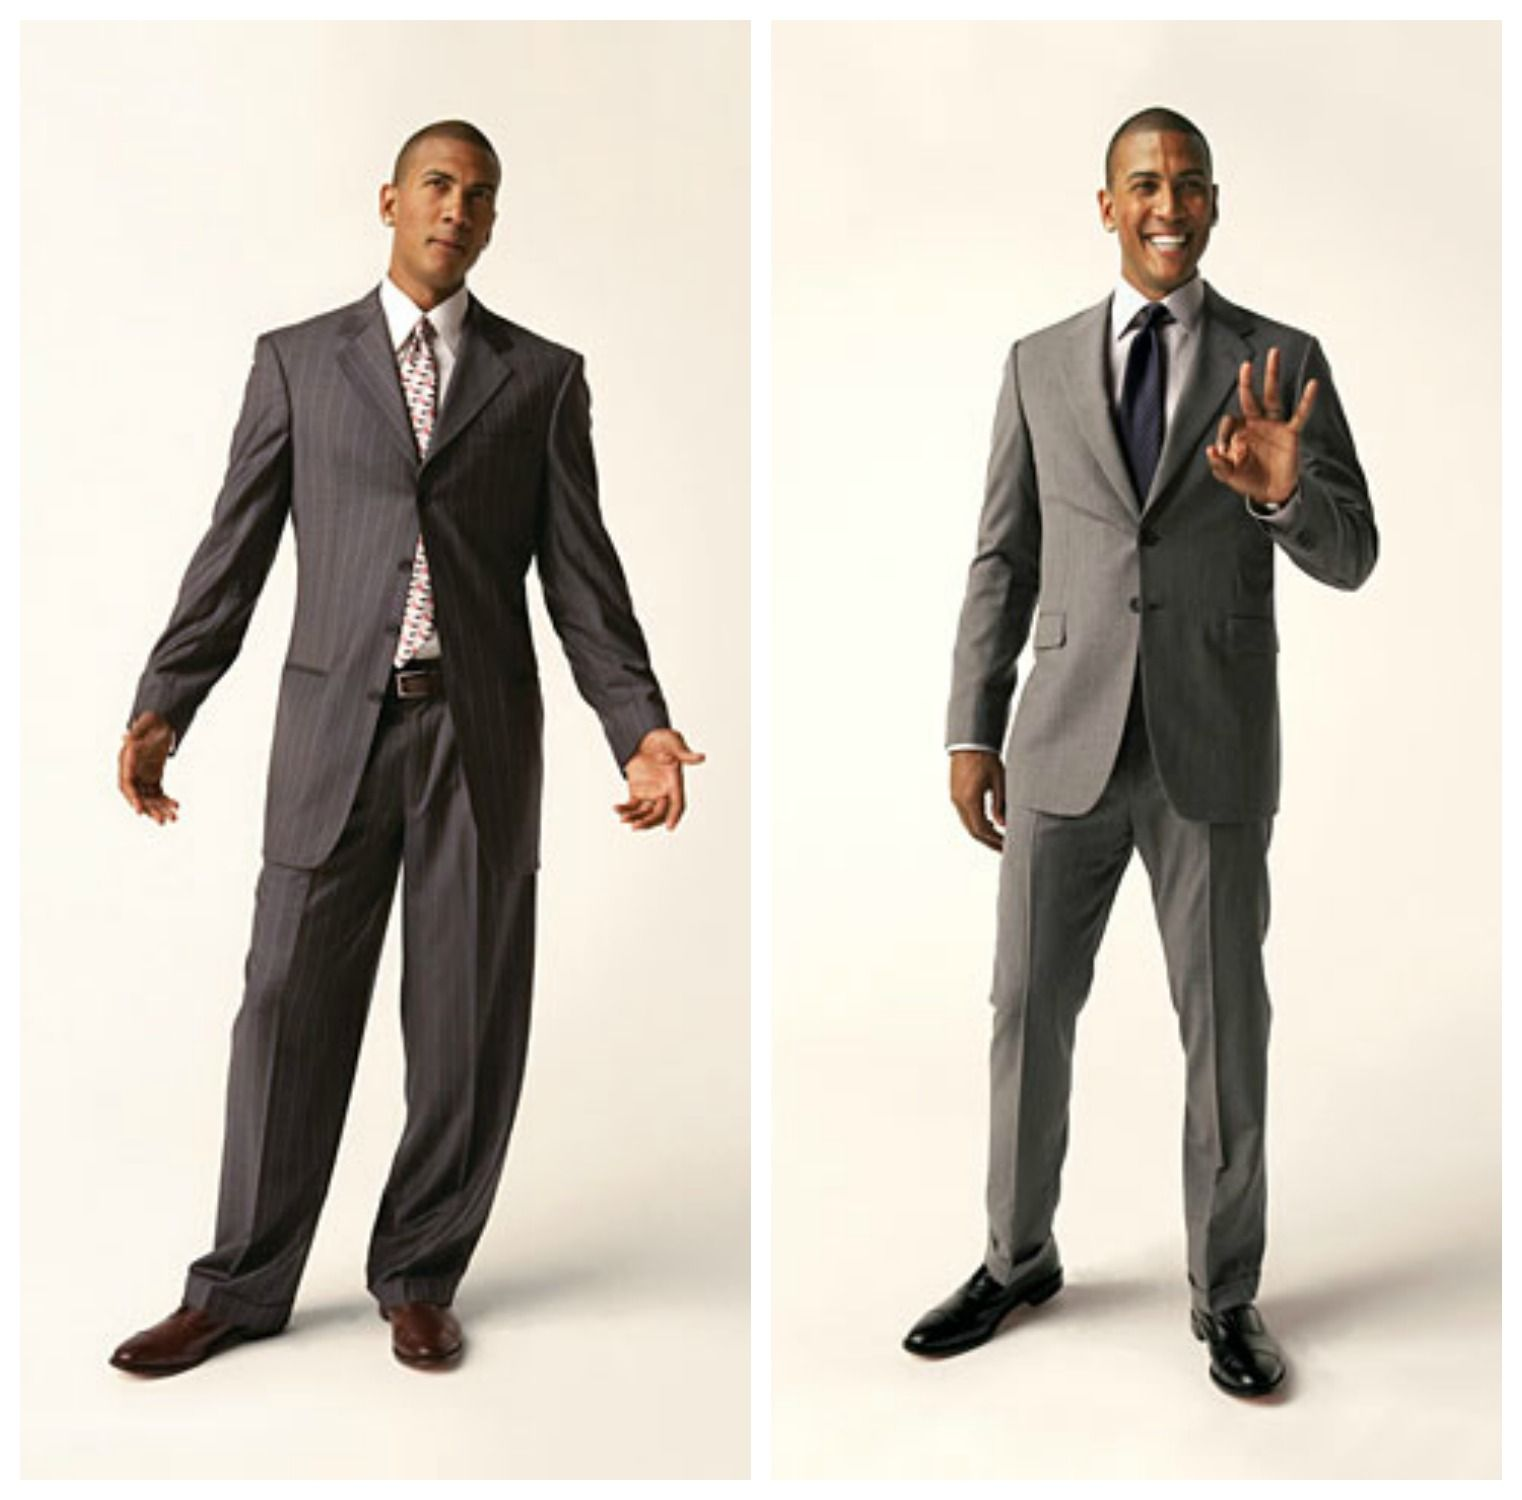 sharpe Skopes Mens Formal Single Breasted 2 Piece Suit In Blue Easy To Lubricate